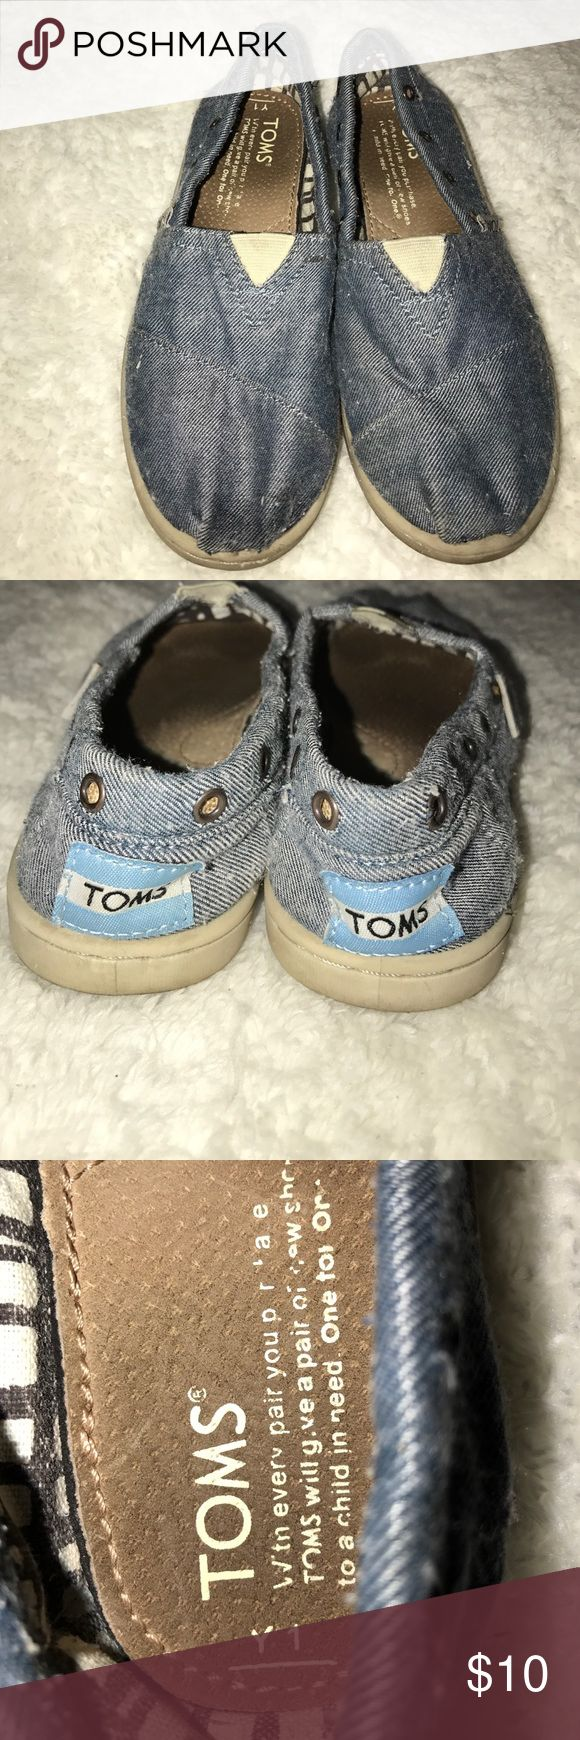 Kid Toms preloved Kids Toms preloved 1y need a cleaning TOMS Shoes Flats & Loafers